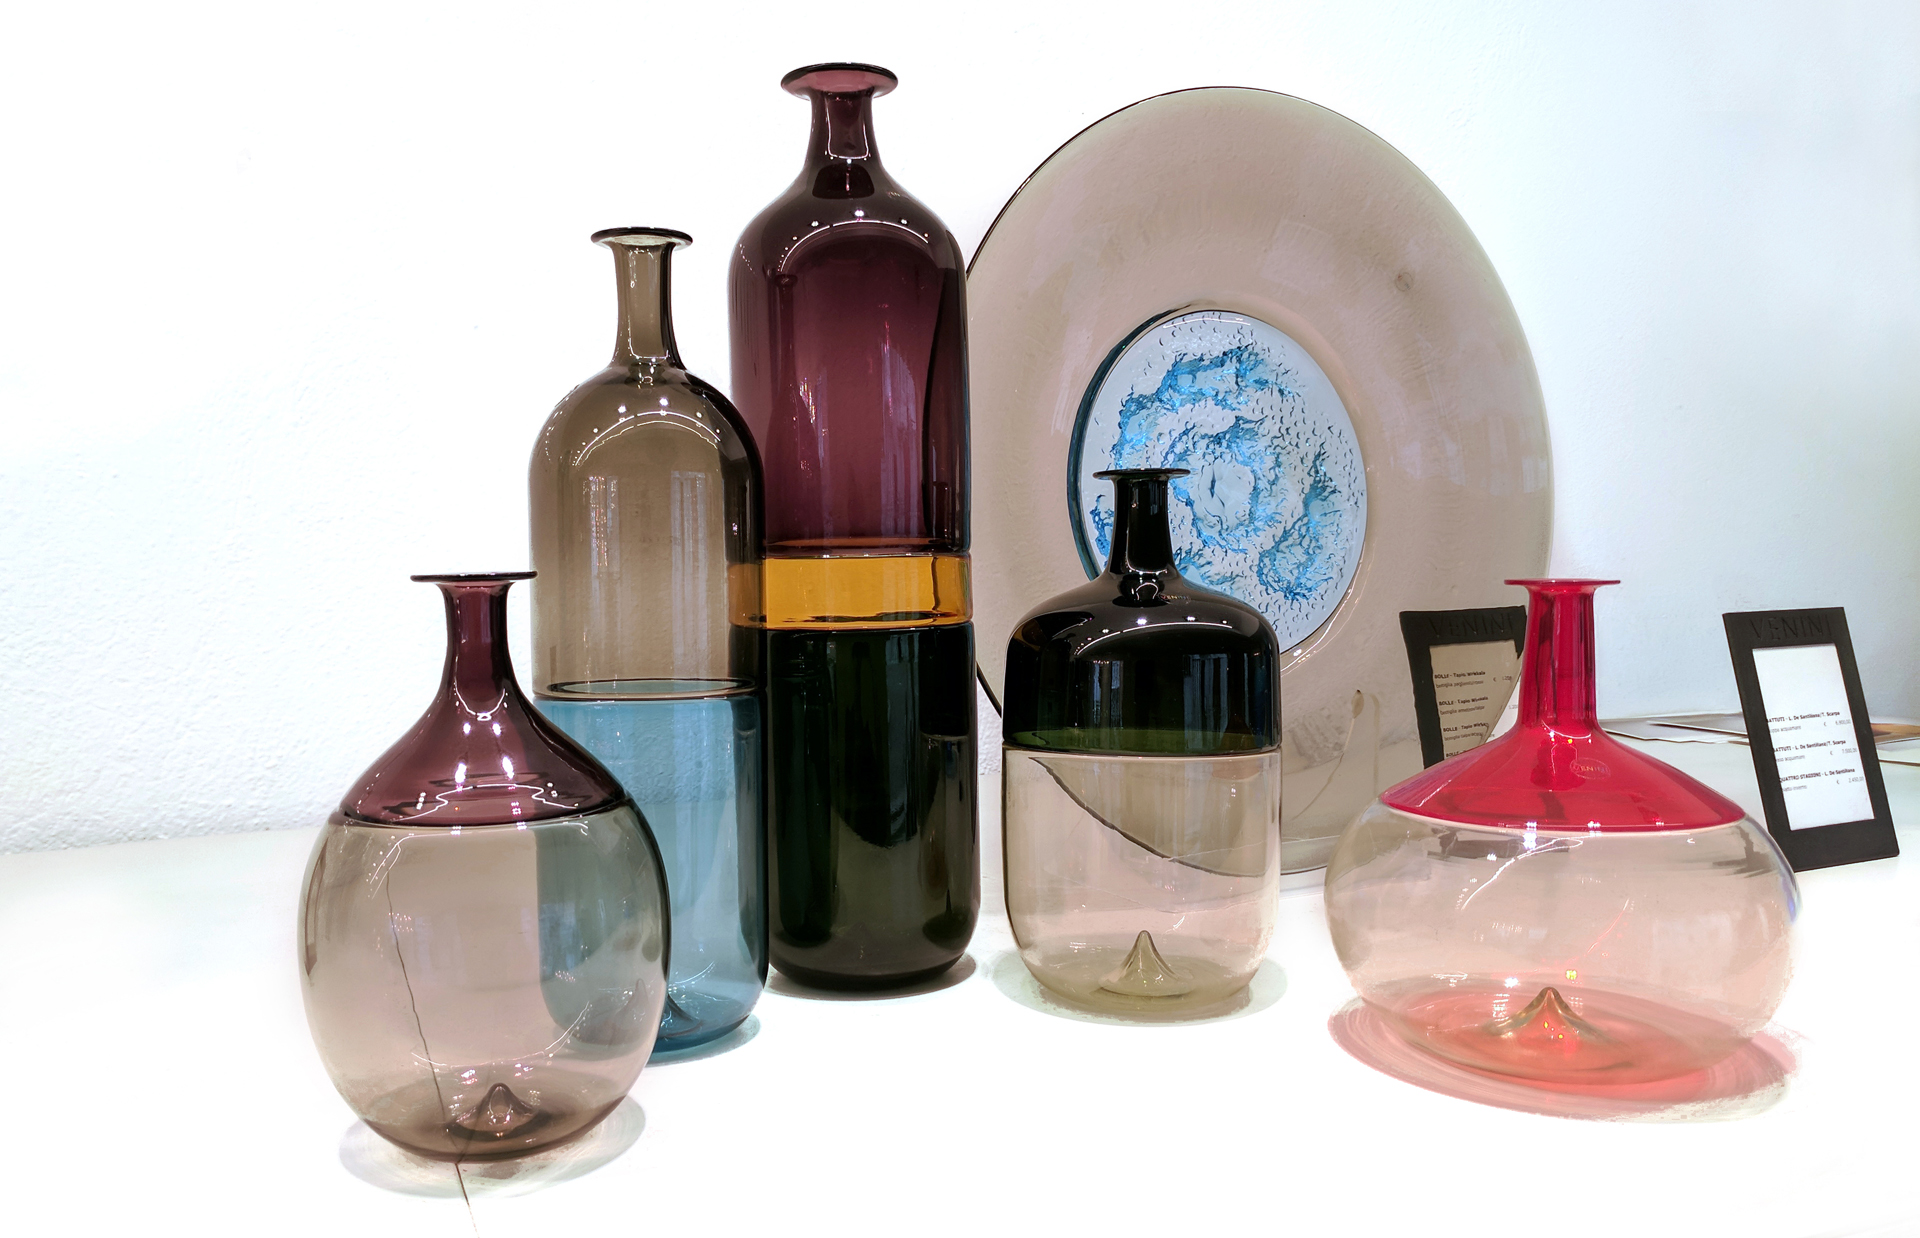 Classic pieces from  Venini , a Murano glass studio that makes it's pieces by collaborating with designers! The collection of bottles  ( Bolle , 1966)  and the plate  ( Piatto Di Tapio , 1970)  are designed by Finnish designer Tapio Wirkkala. We are huge fans of Tapio!